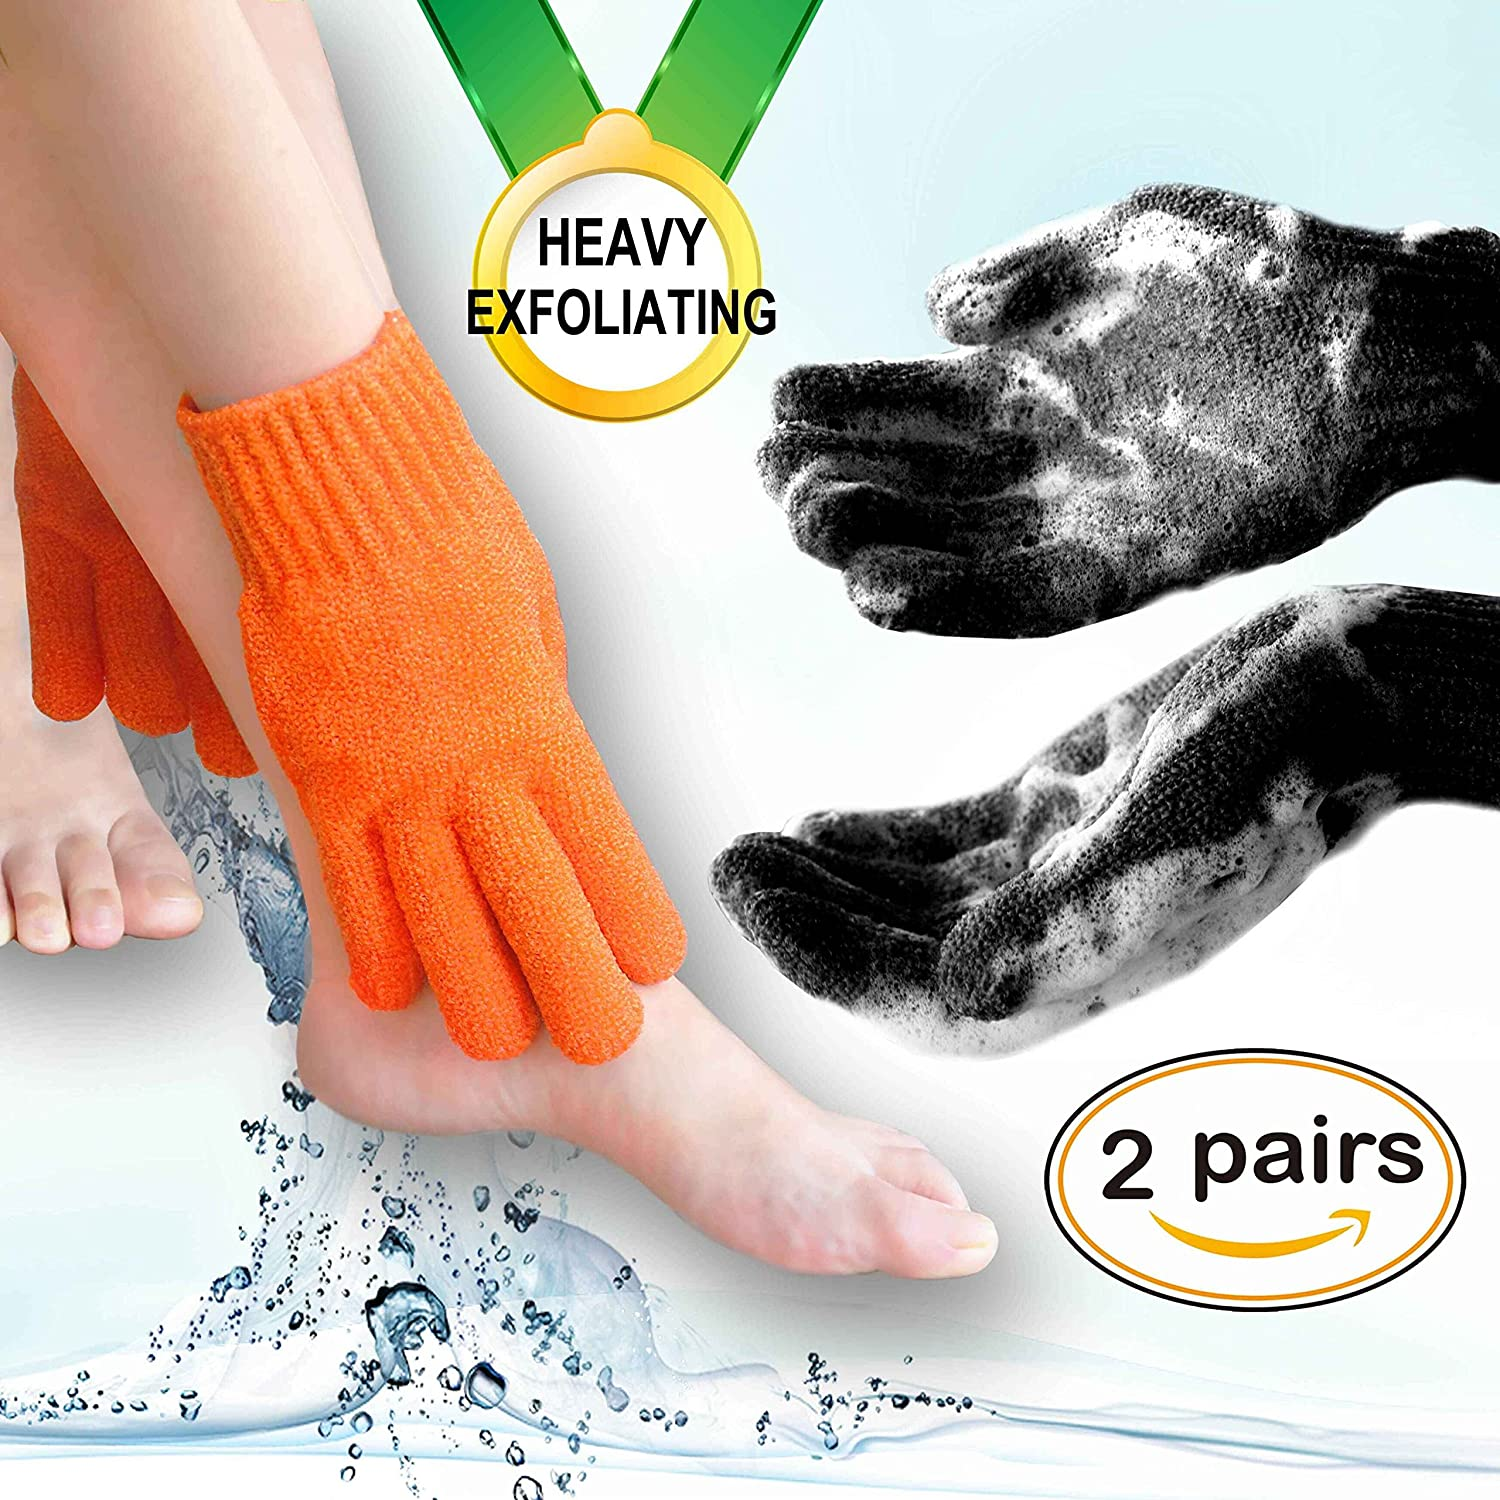 Home Spa Exfoliating gloves Hydro full body wash to cleanse scrub gloves - Shower & Bath - Deep clean dead skin and Improves blood circultion (2 pairs Plain, Orange+Black) …